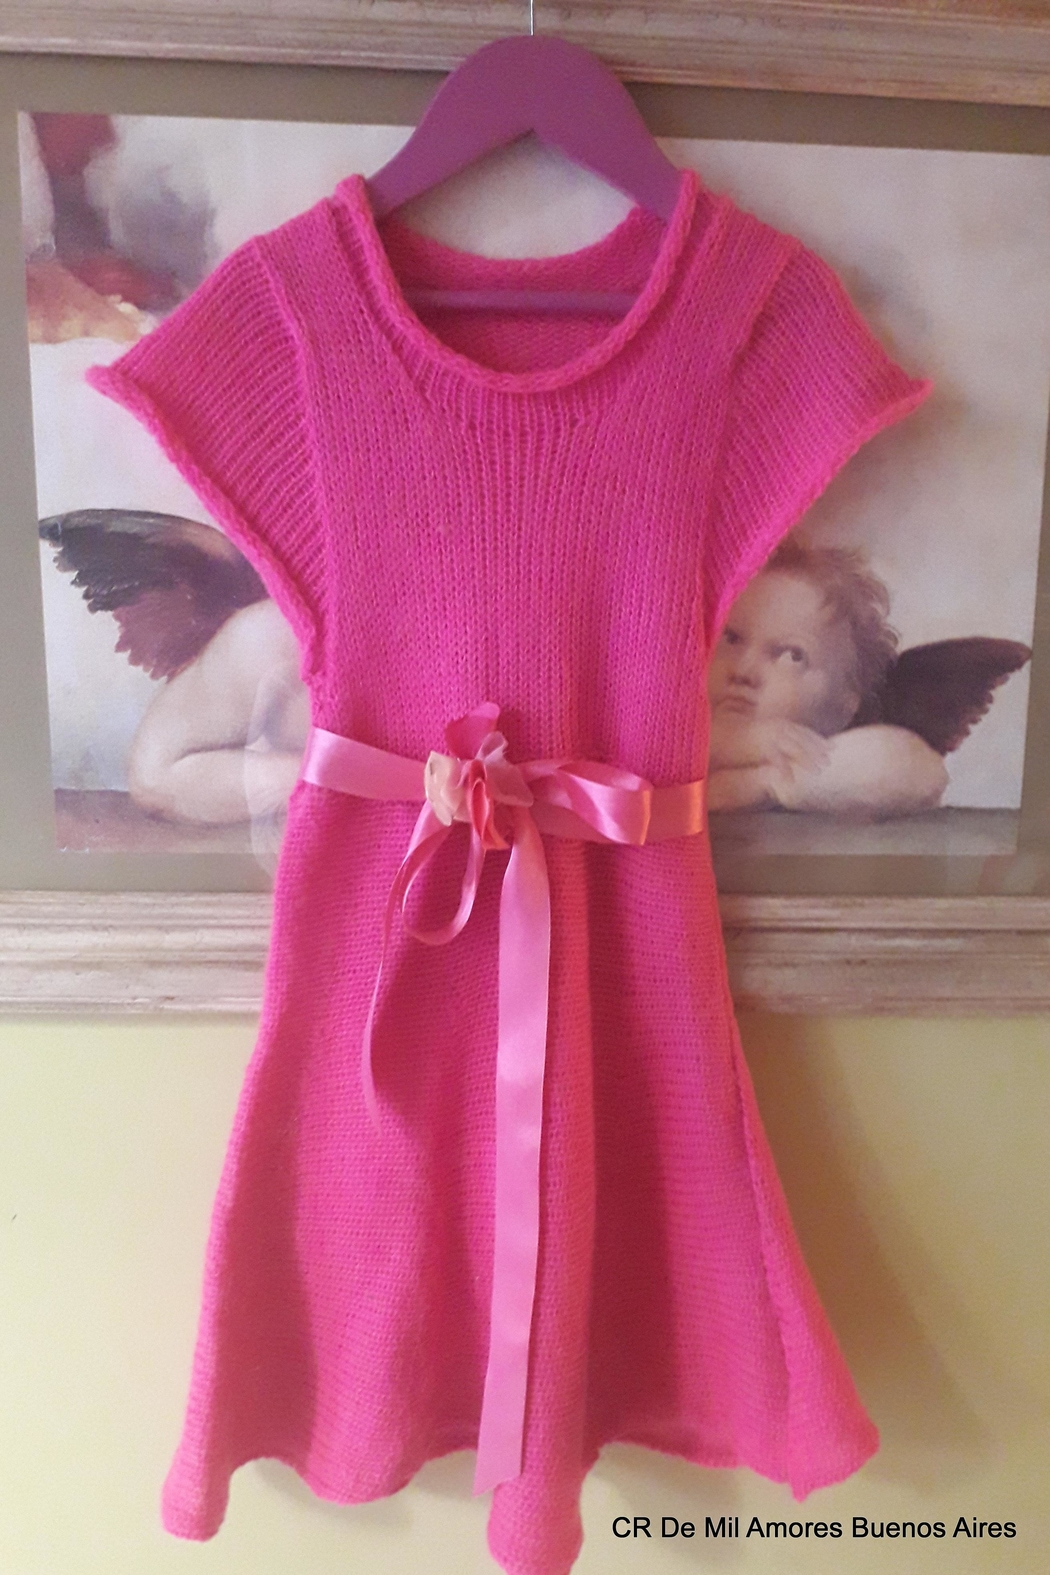 De Mil Amores Buenos Aires Girls Dress - Main Image